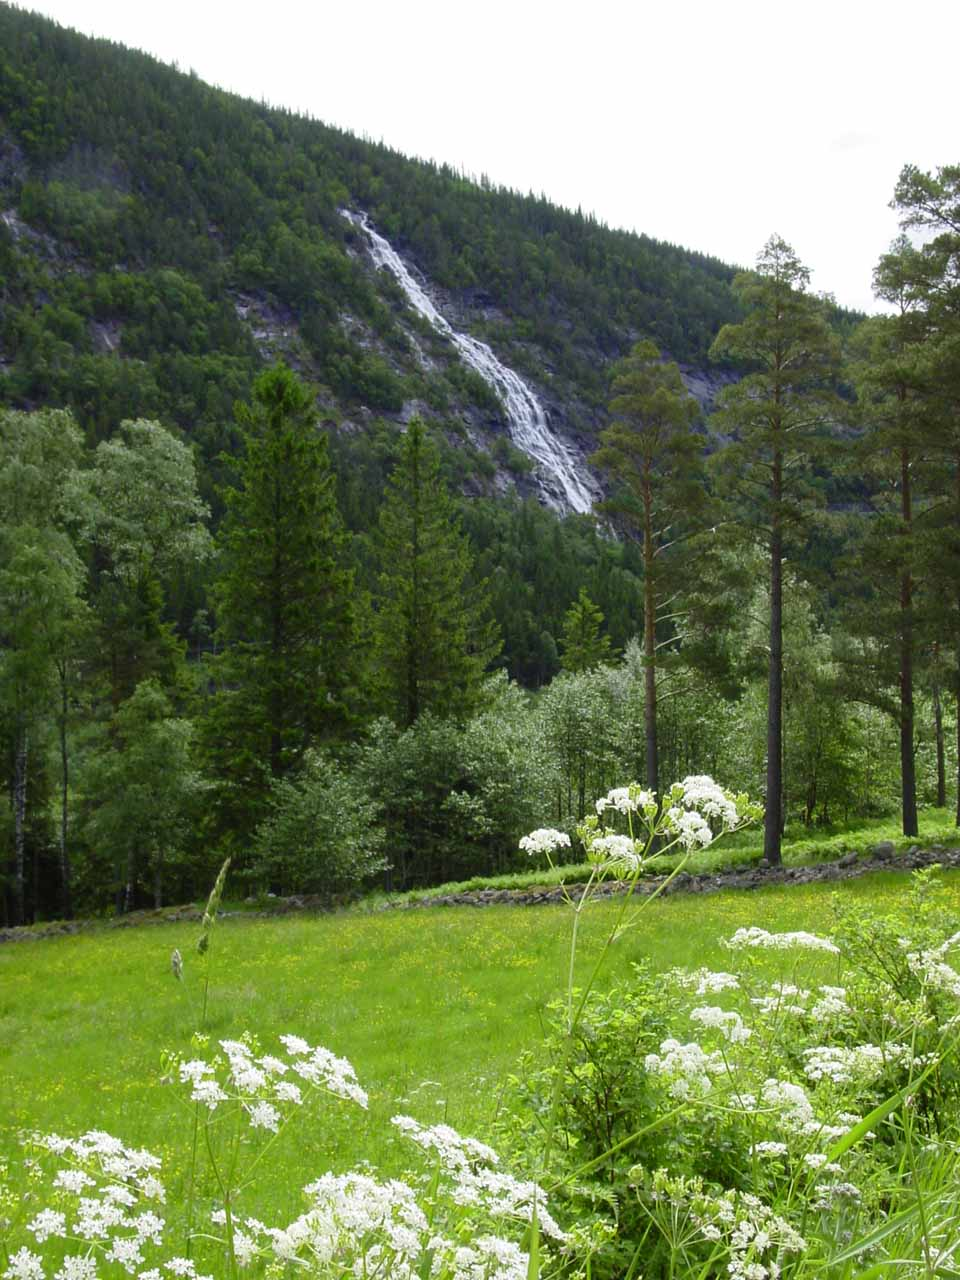 This was the first waterfall we saw along the Rv37 on the way to Rjukan (roughly 7km east of town)